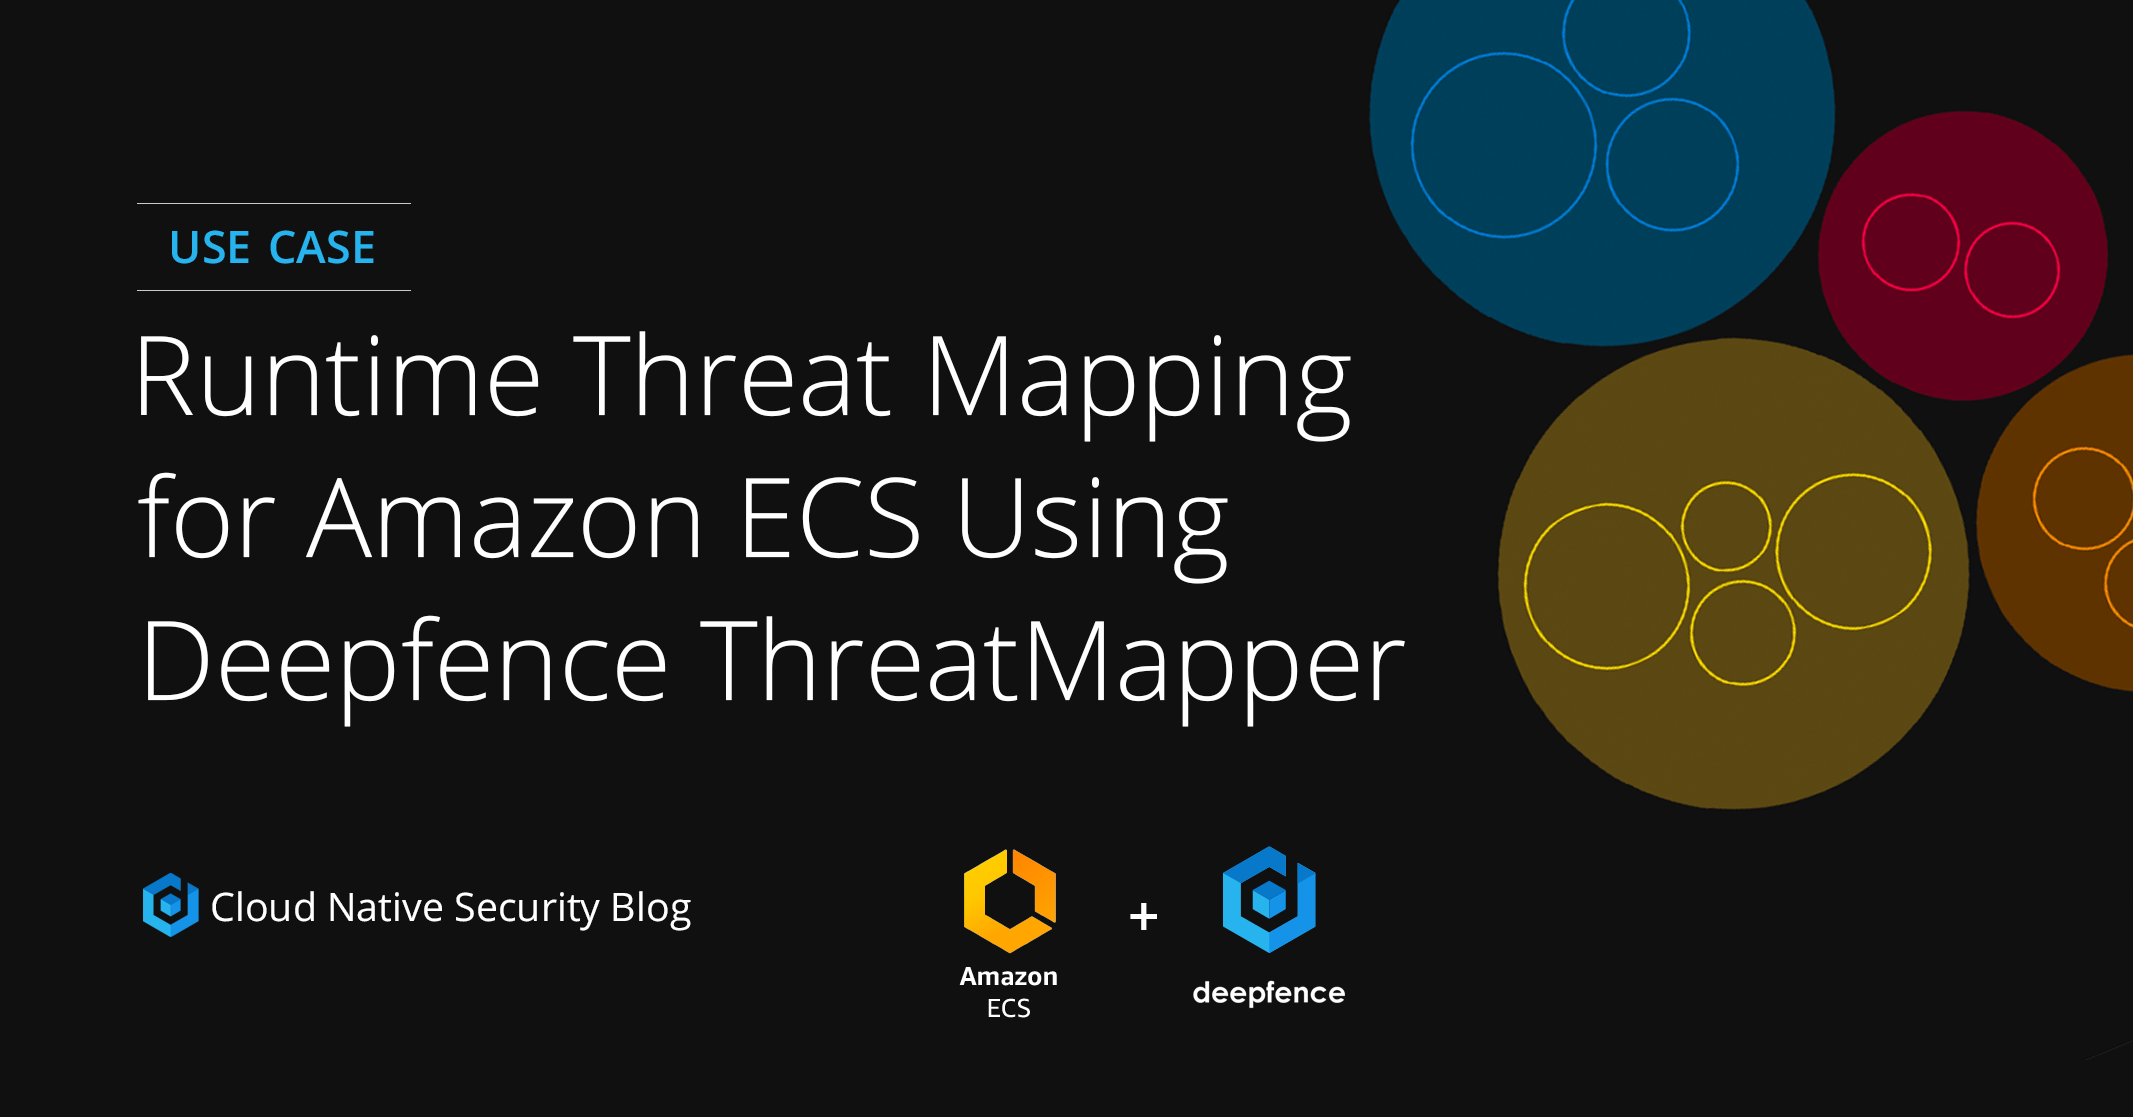 Blog post - Use Case Runtime Threat Mapping for Amazon ECS Using Deepfence ThreatMapper